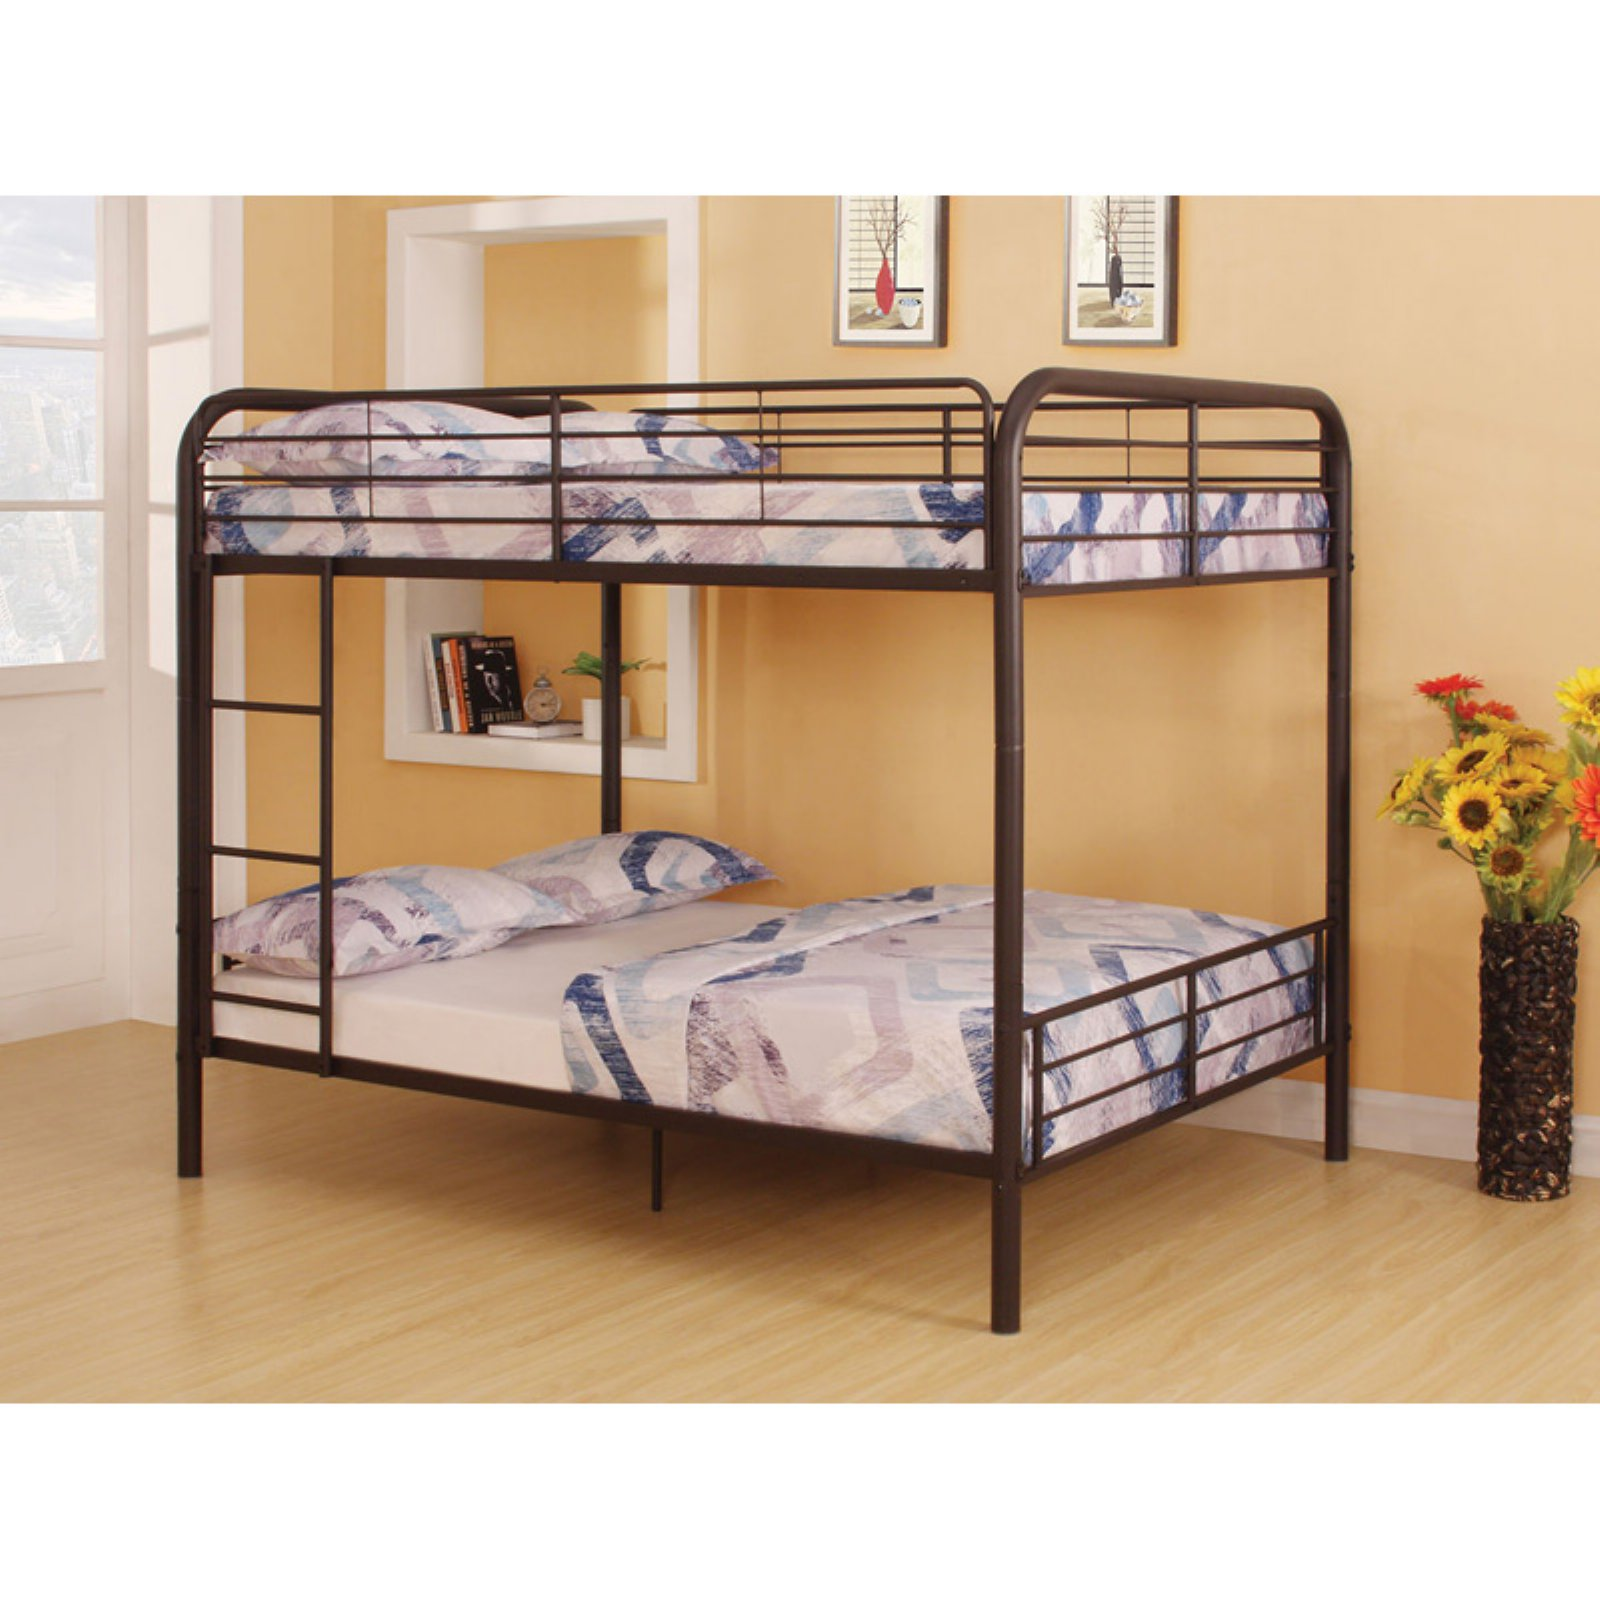 ACME Bristol Full over Full Bunk Bed in Dark Brown, Multiple Finish